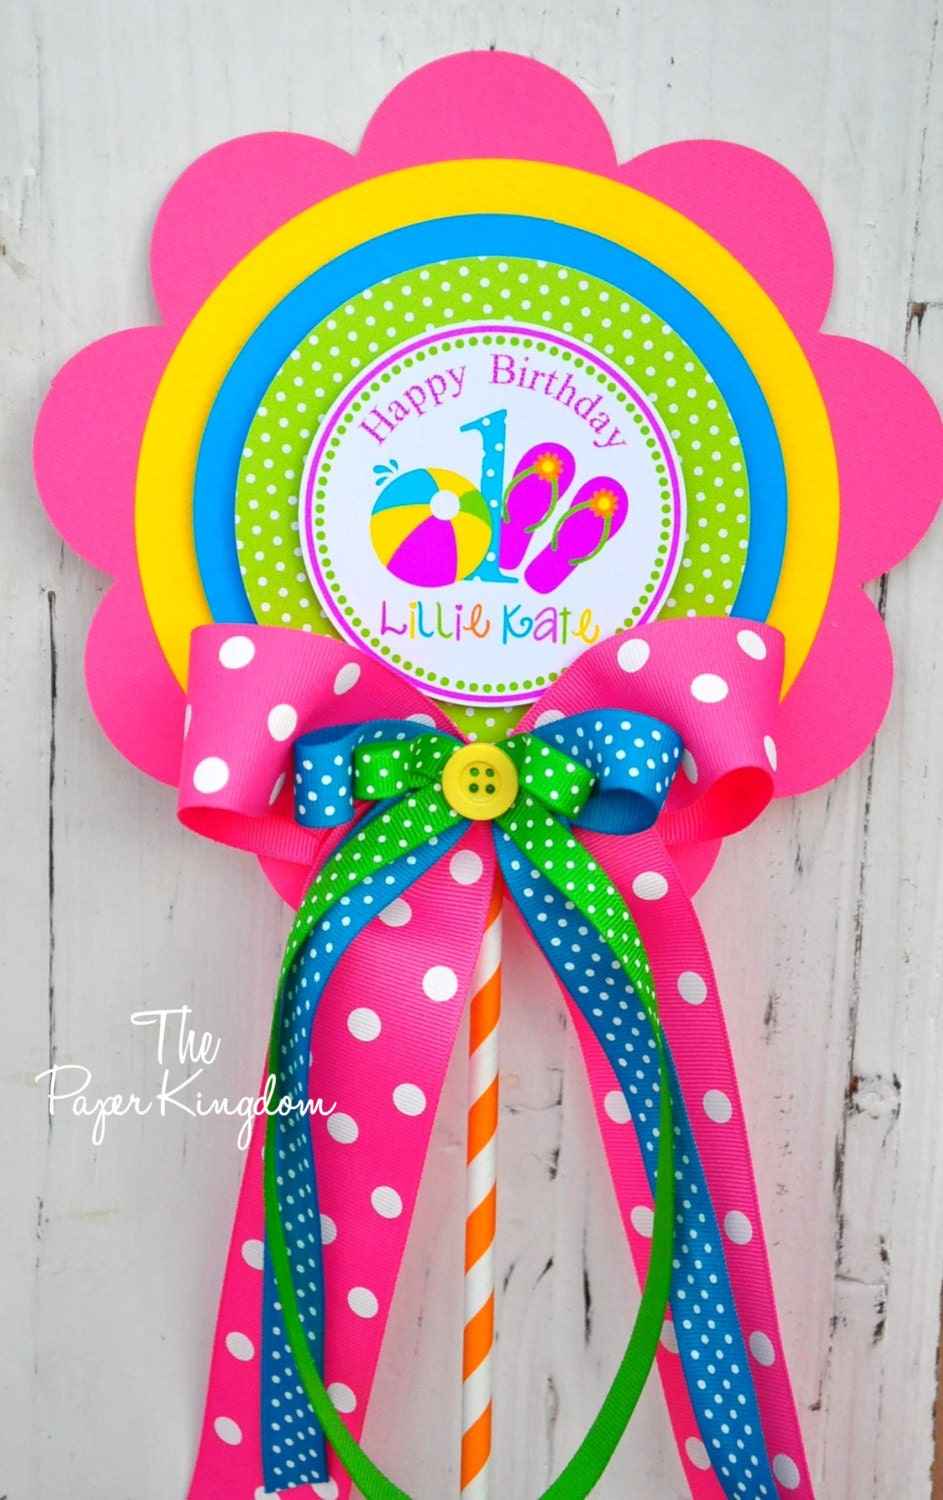 pin from decorating it here flip ideas well flop party is anticipated decor i the long pictures